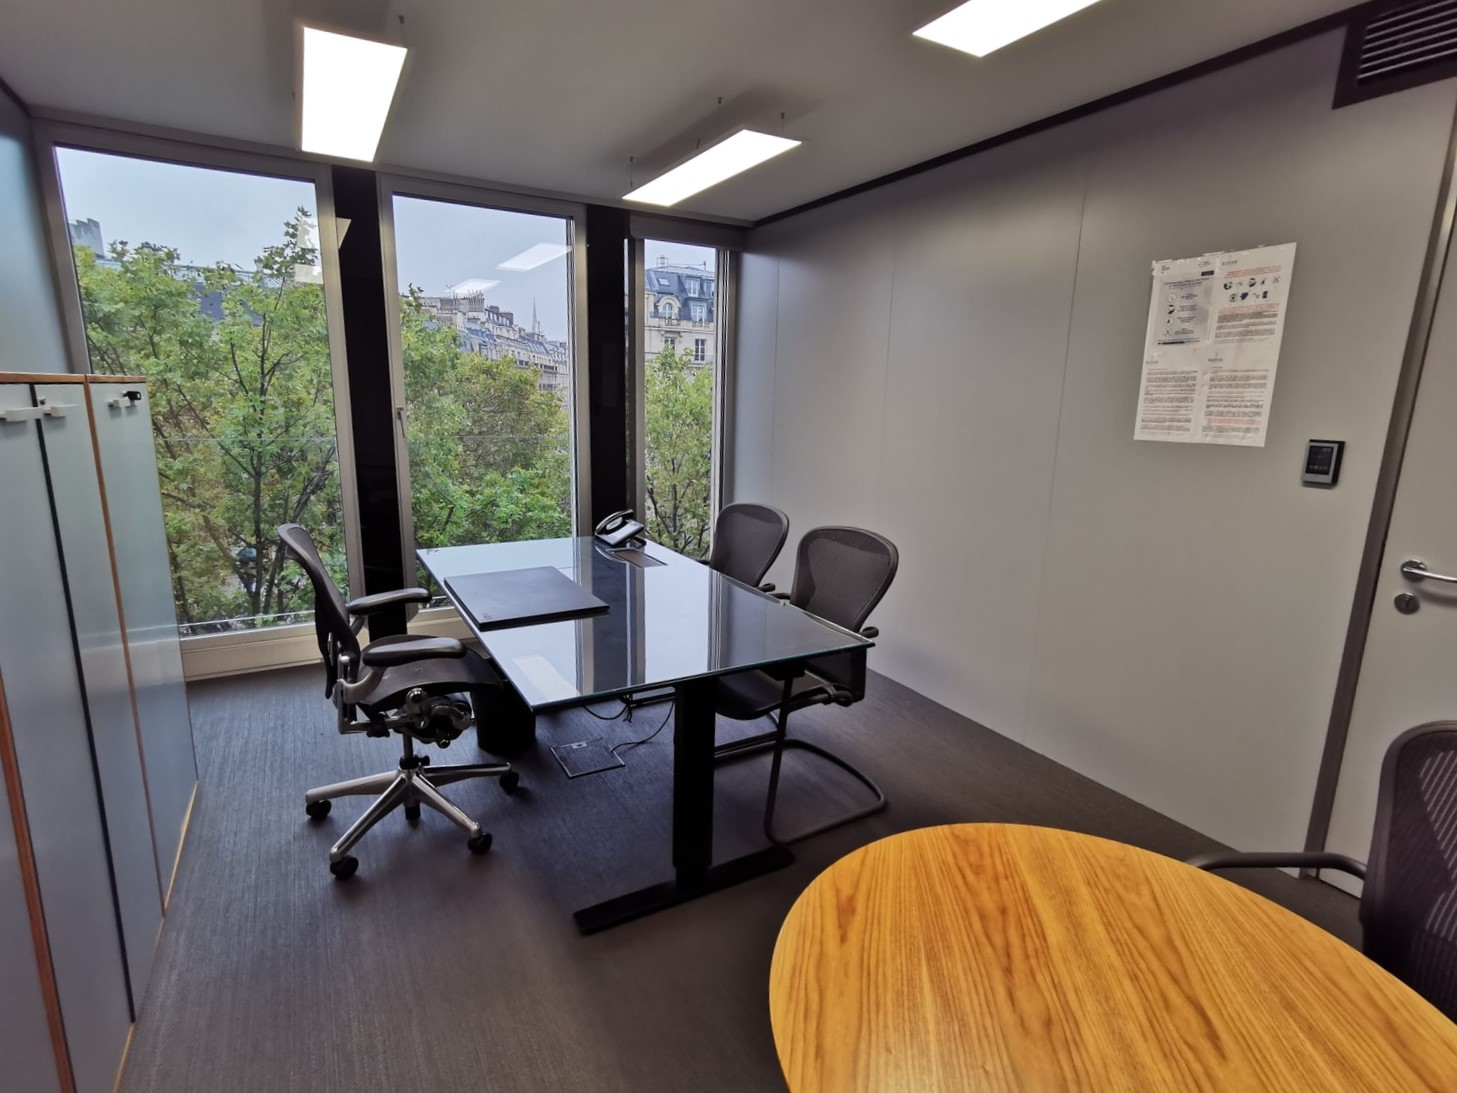 Private office overlooking a green environment